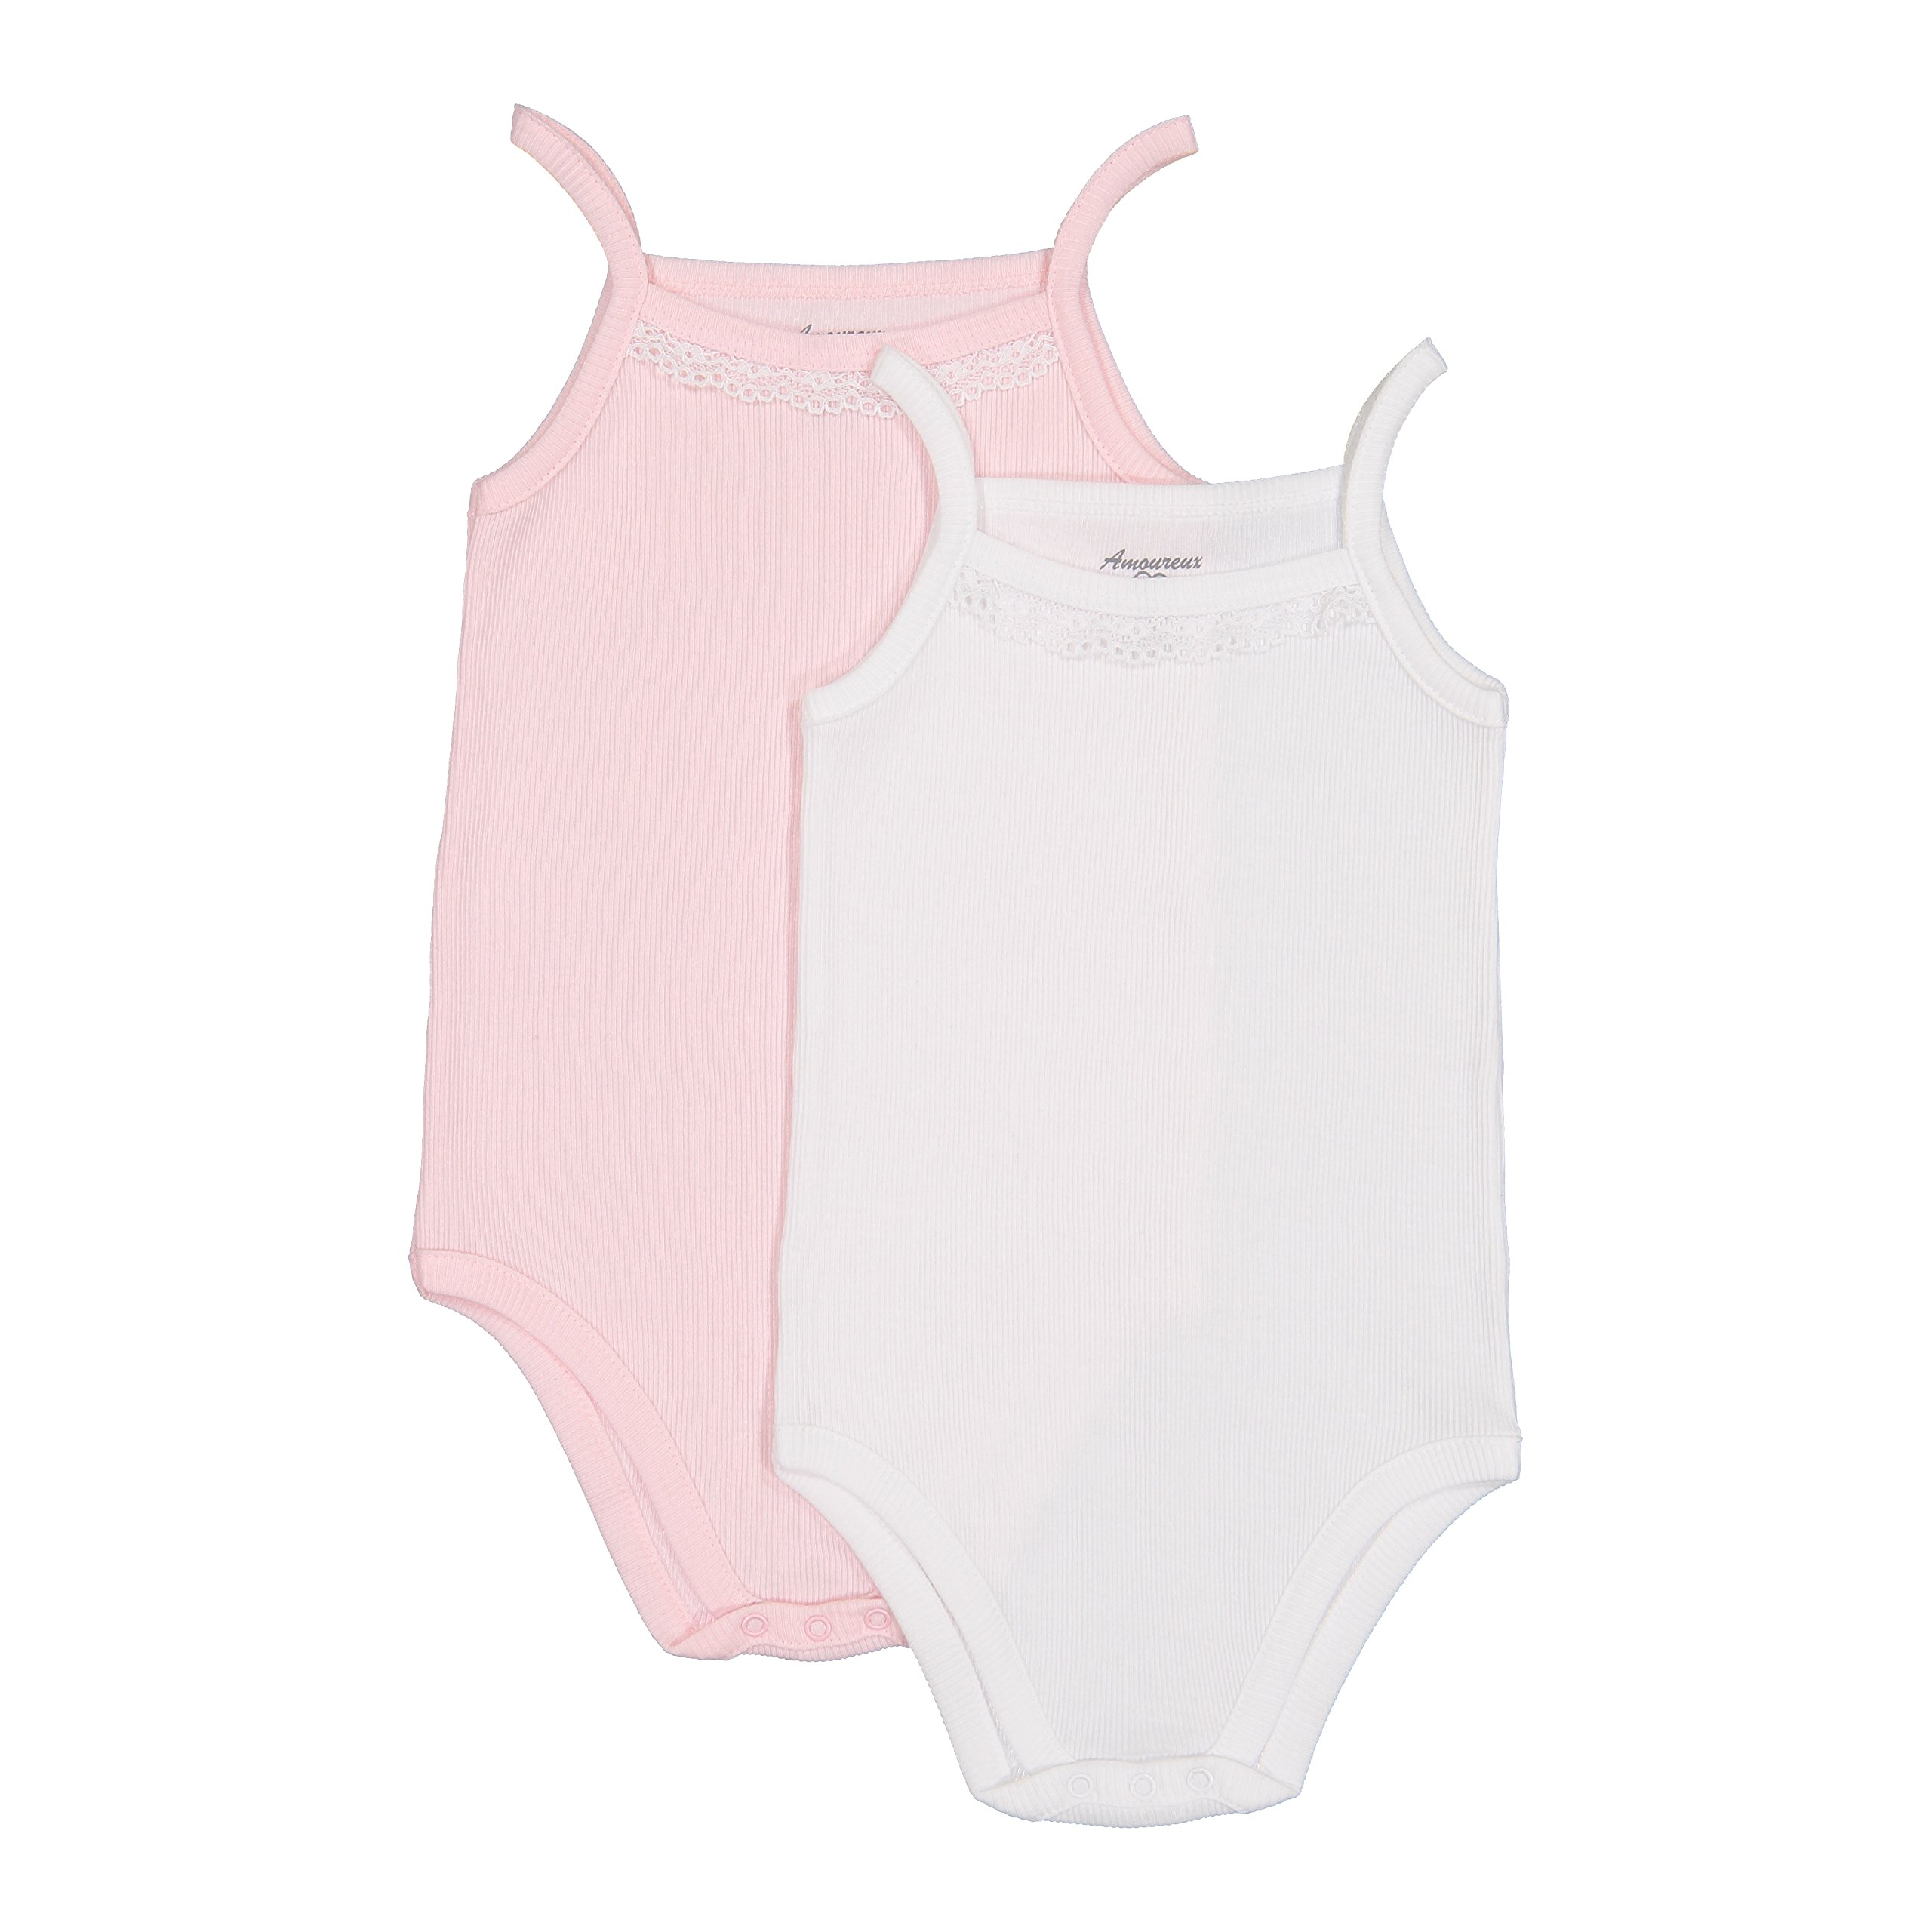 Amoureux Bebe Baby Girls Camisole Onesies 100% Cotton Ribbed White/Pink 2pk 6m